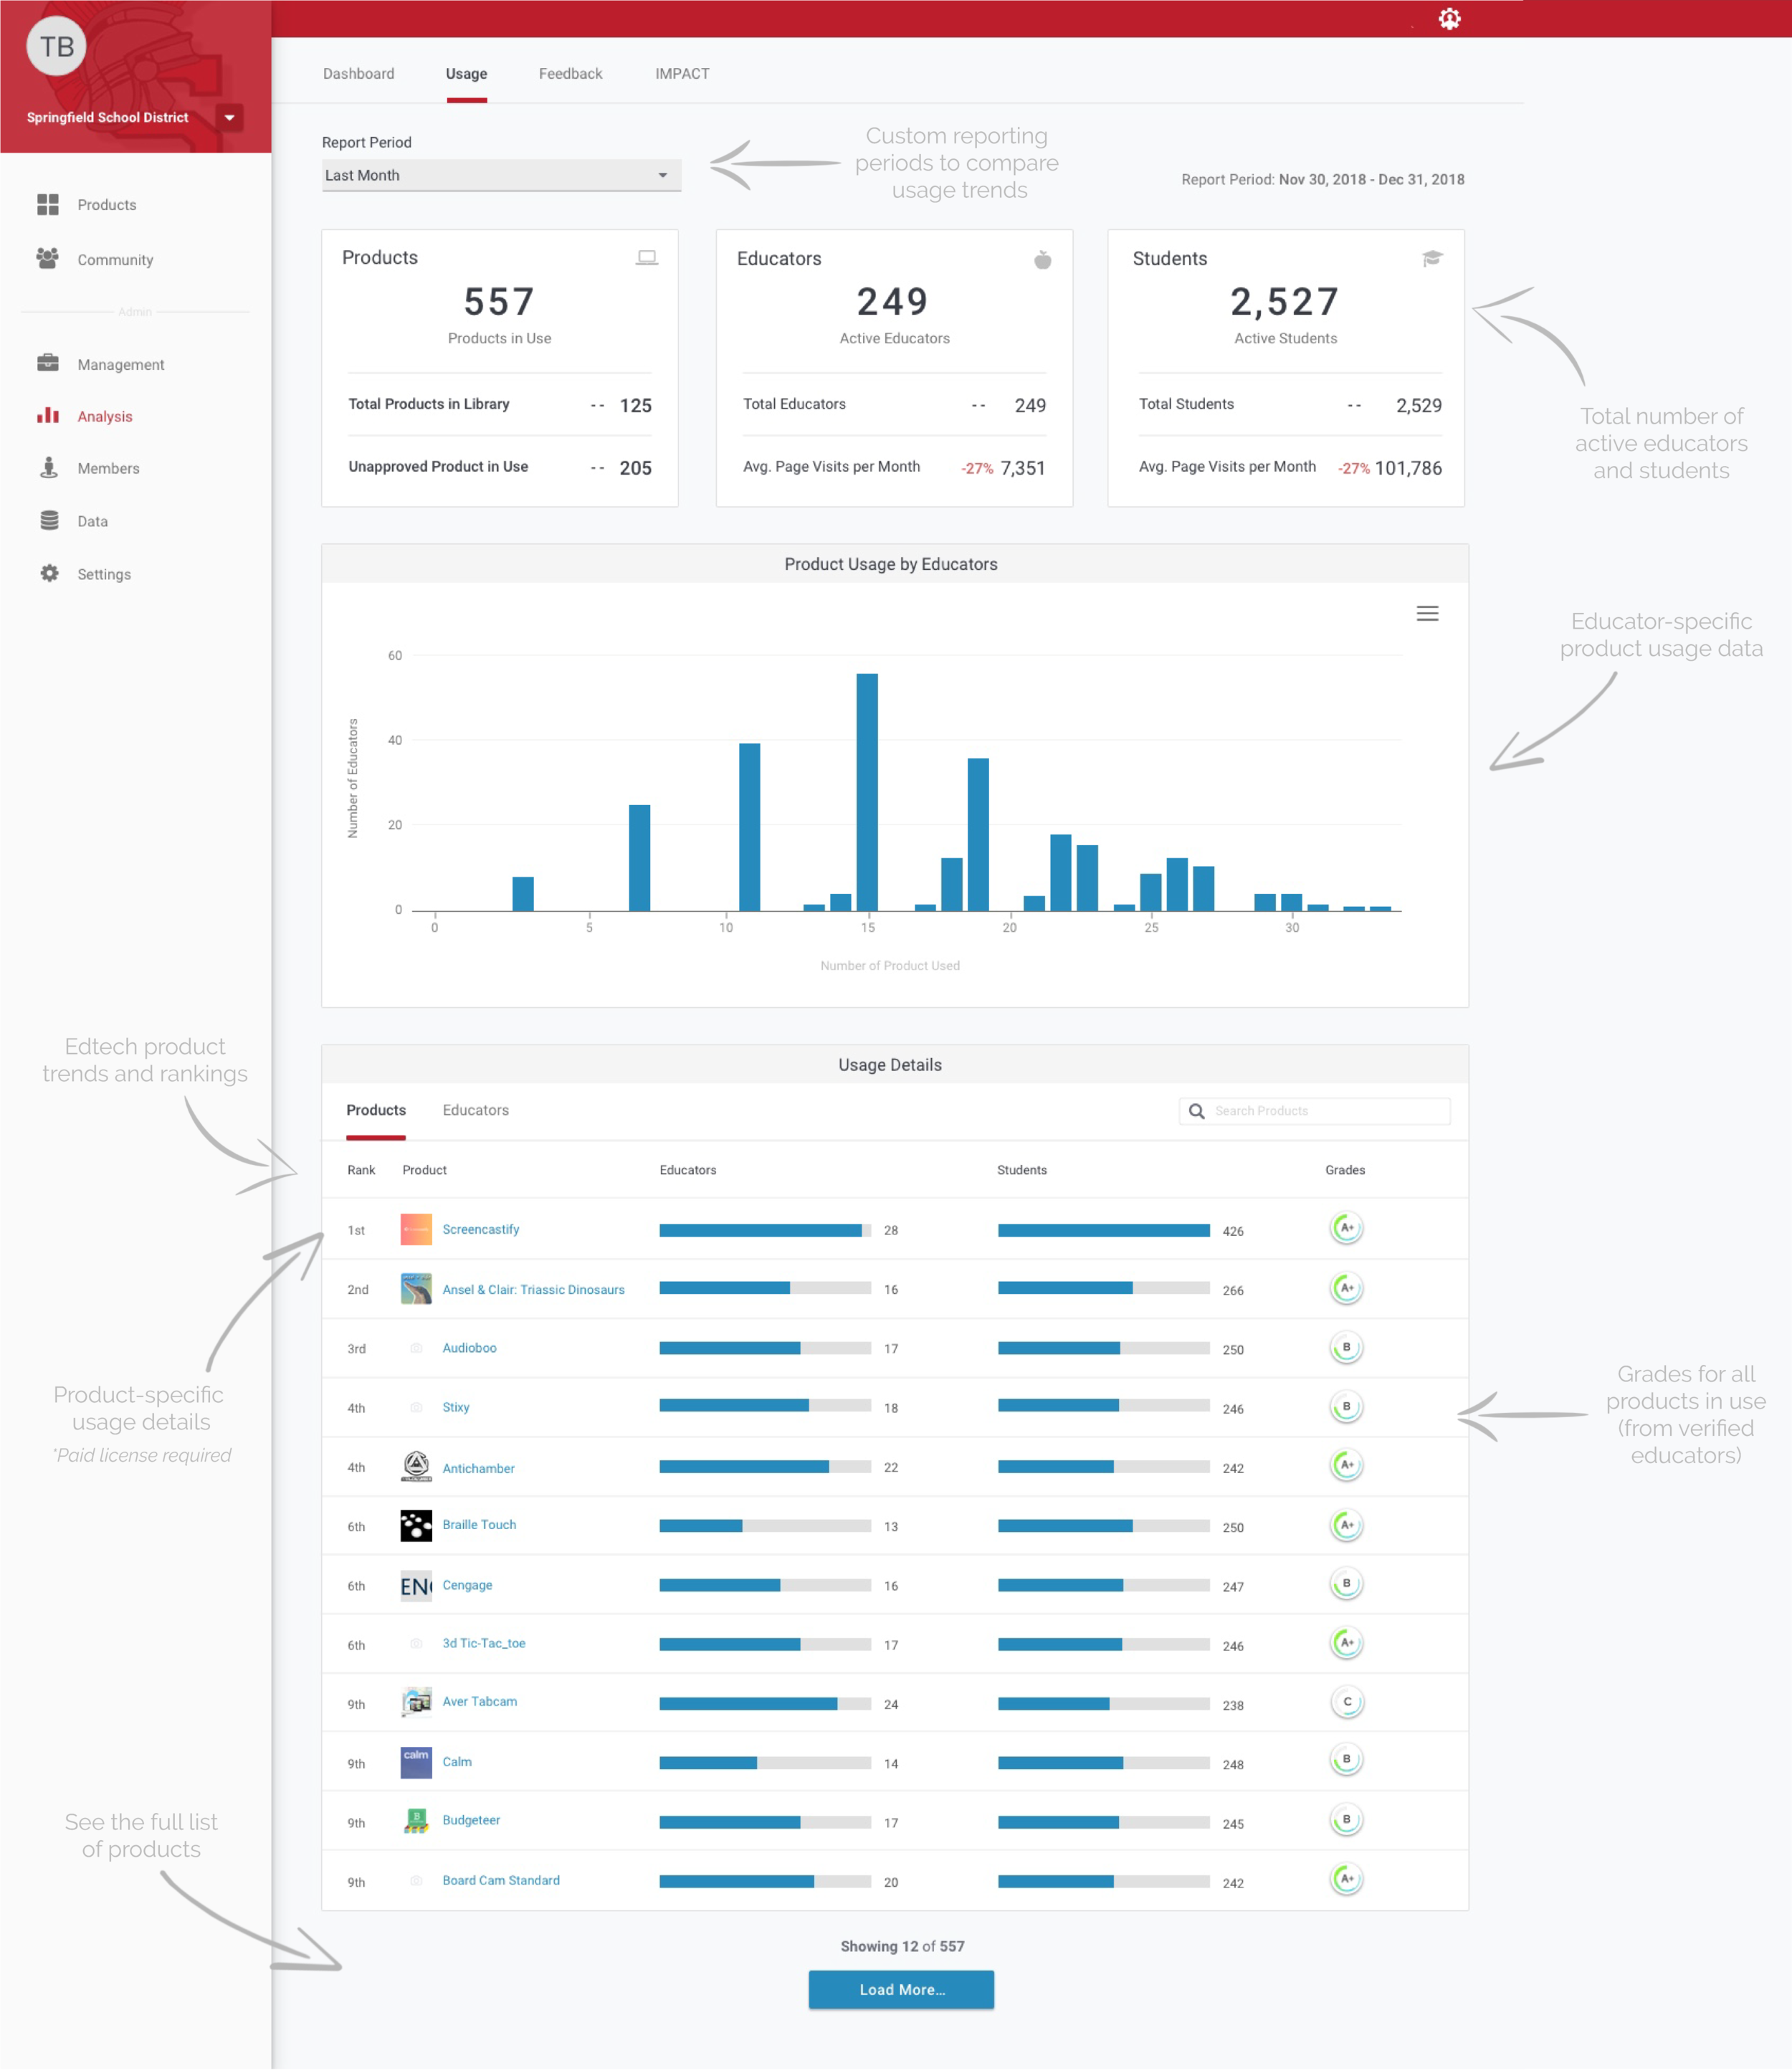 ChromeExtensionAnalyticsDashboard-02.png